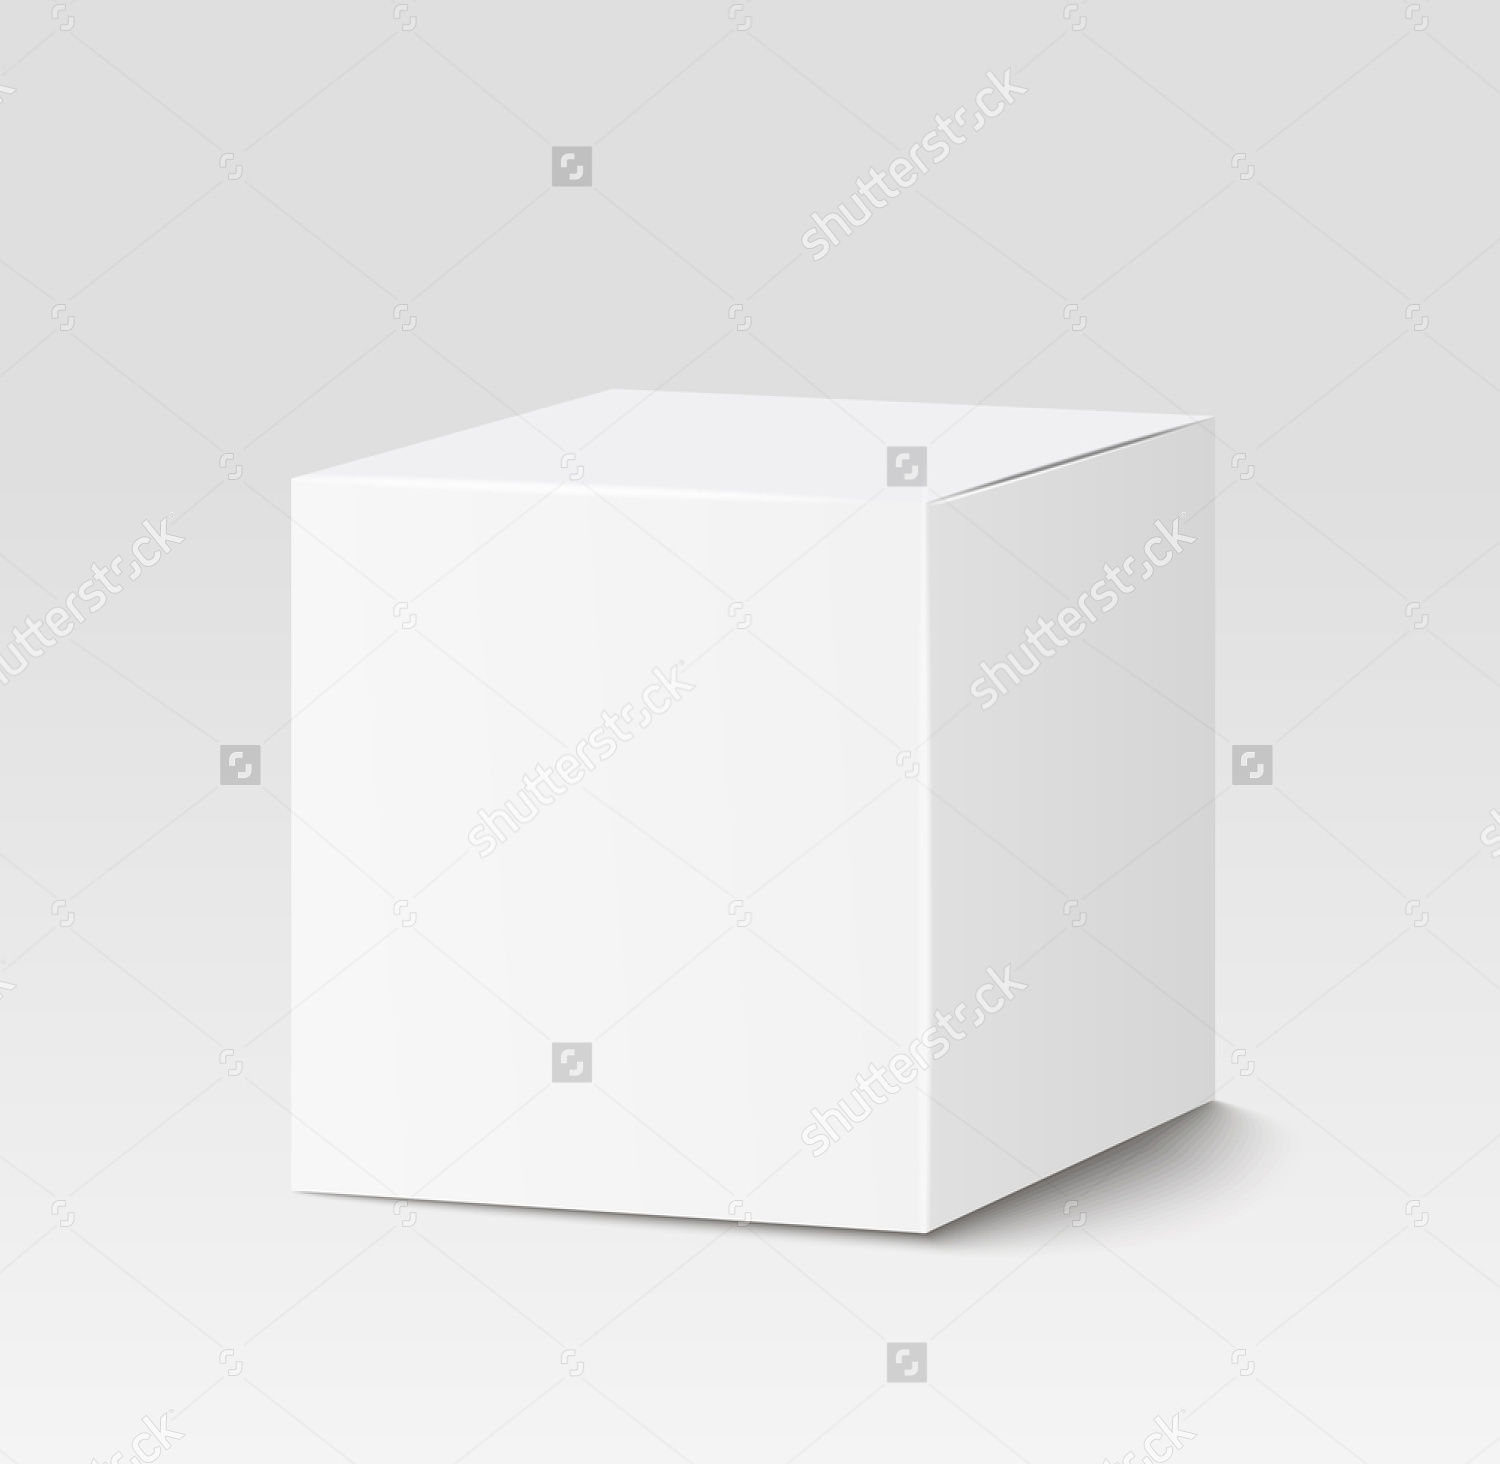 white square cardboard box packaging